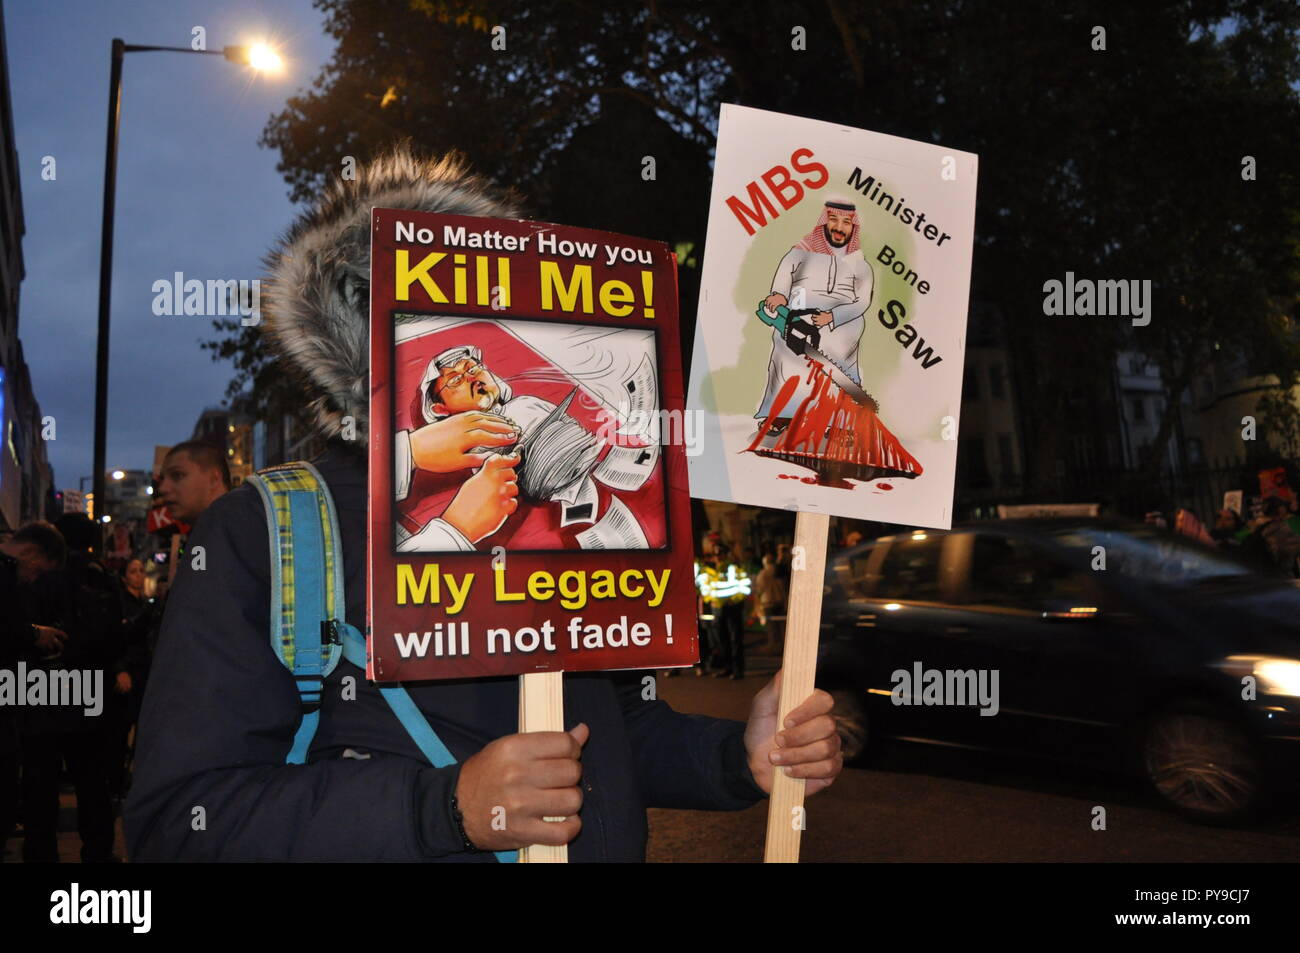 London/UK. 25 October 2018. 'Kill Me! My Legacy will not fade!' Posters and banners depicting the anger of the murder of Jamal Khashoggi, a dissident. - Stock Image